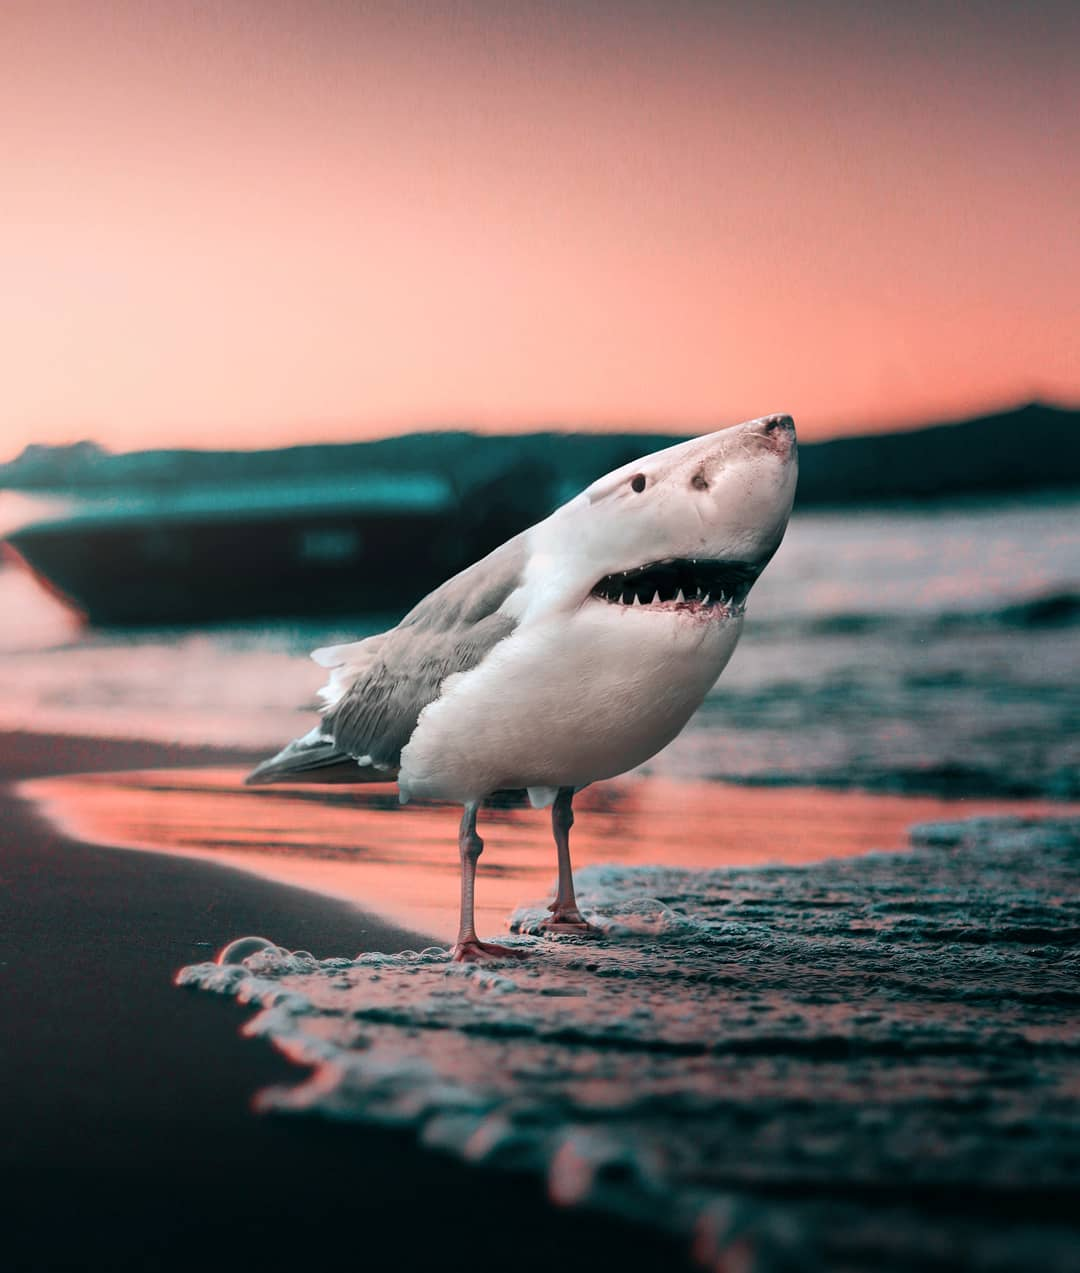 photomanipulation shark by ronald ong